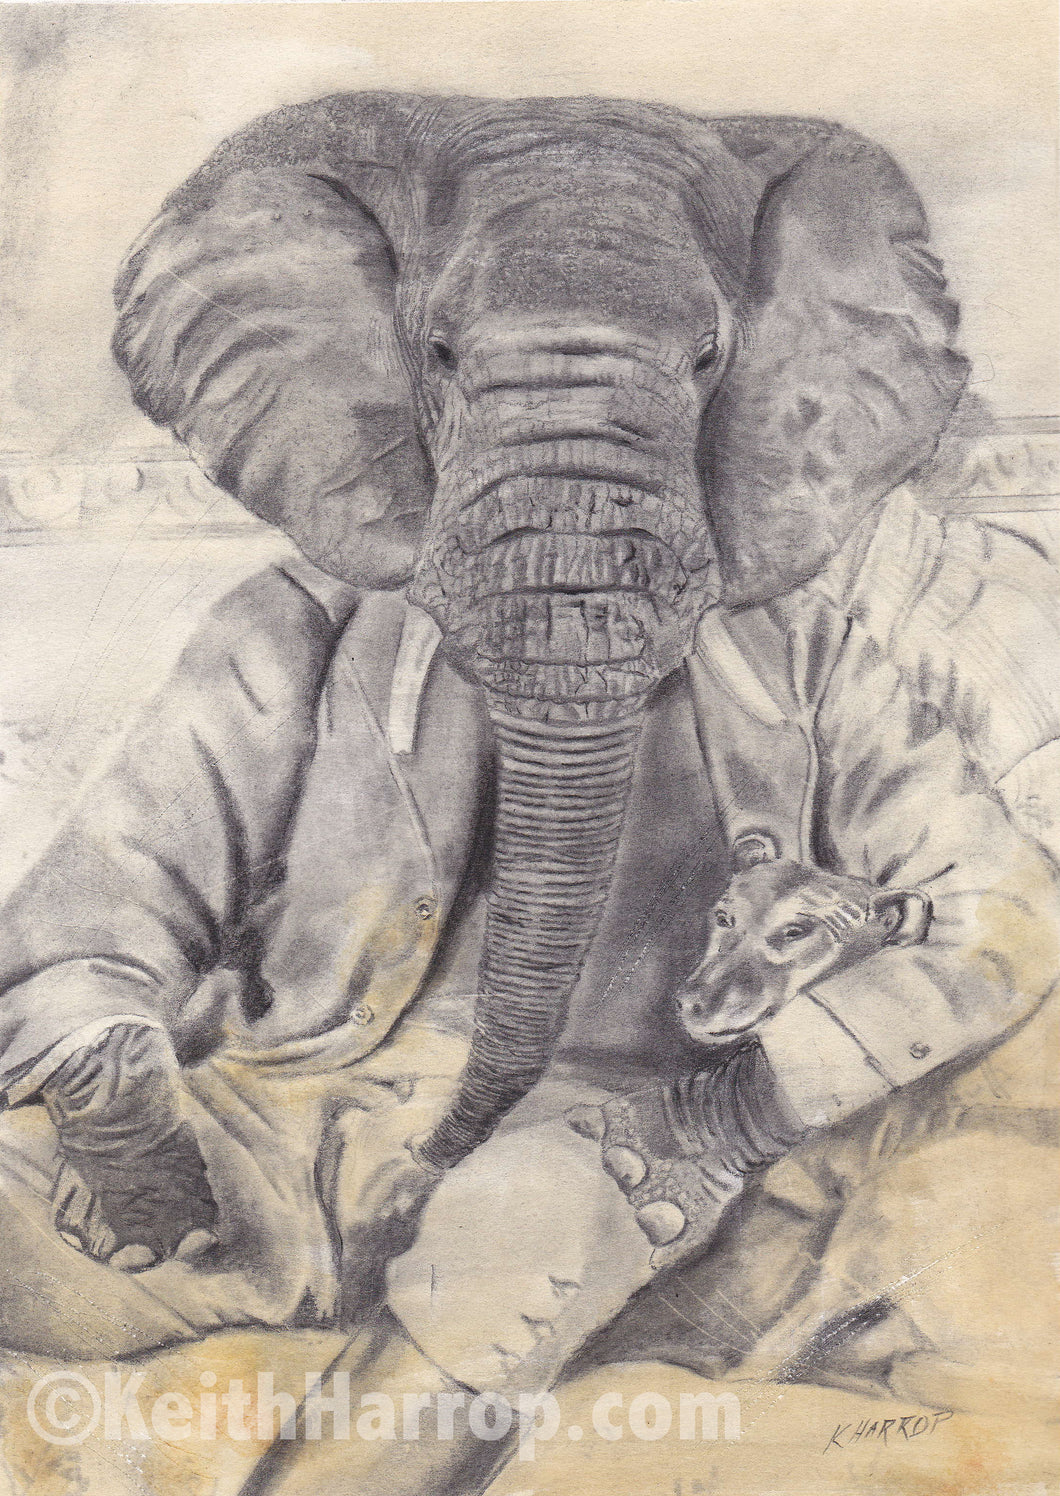 Animorphia #4 (Elephant)  - Pencil Illustration